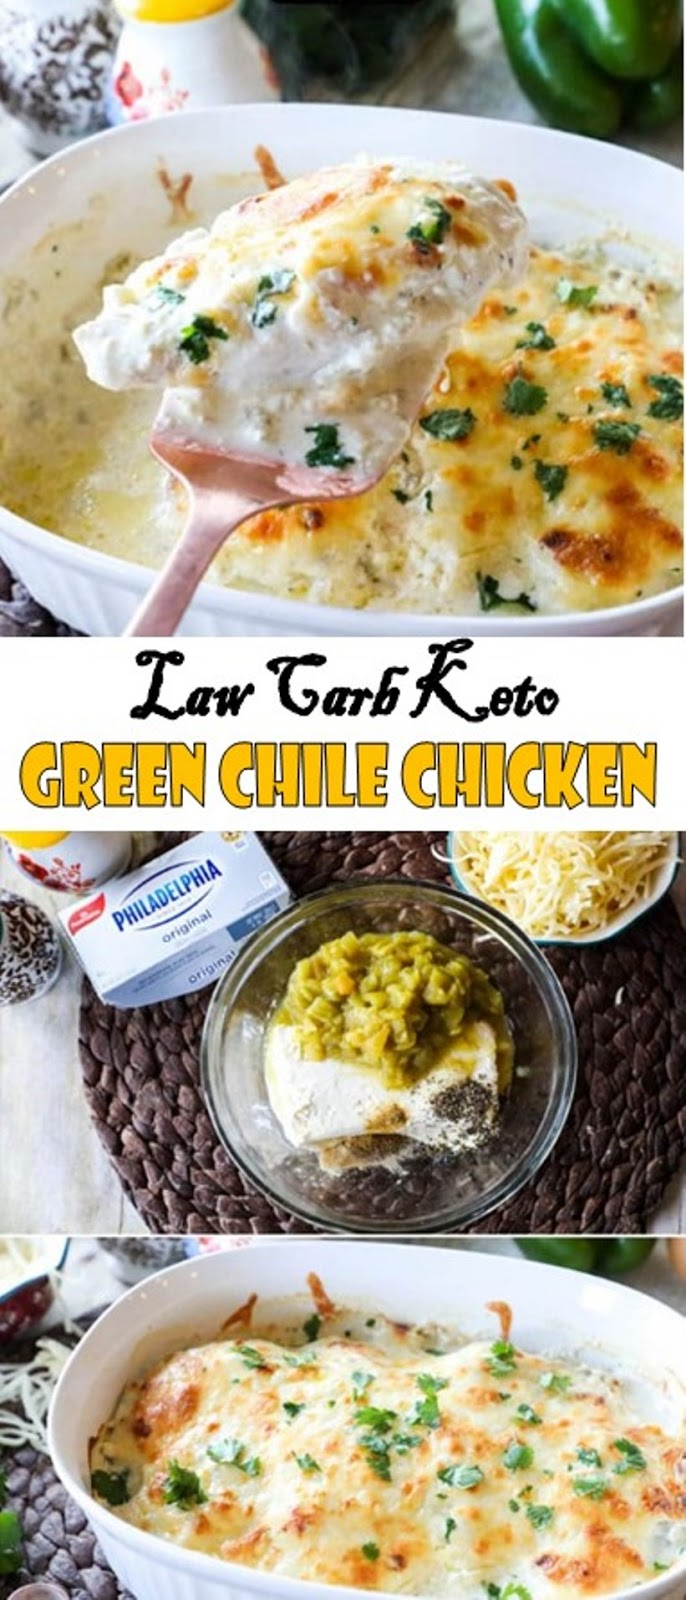 Law Carb Keto Green Chile Chicken Recipe